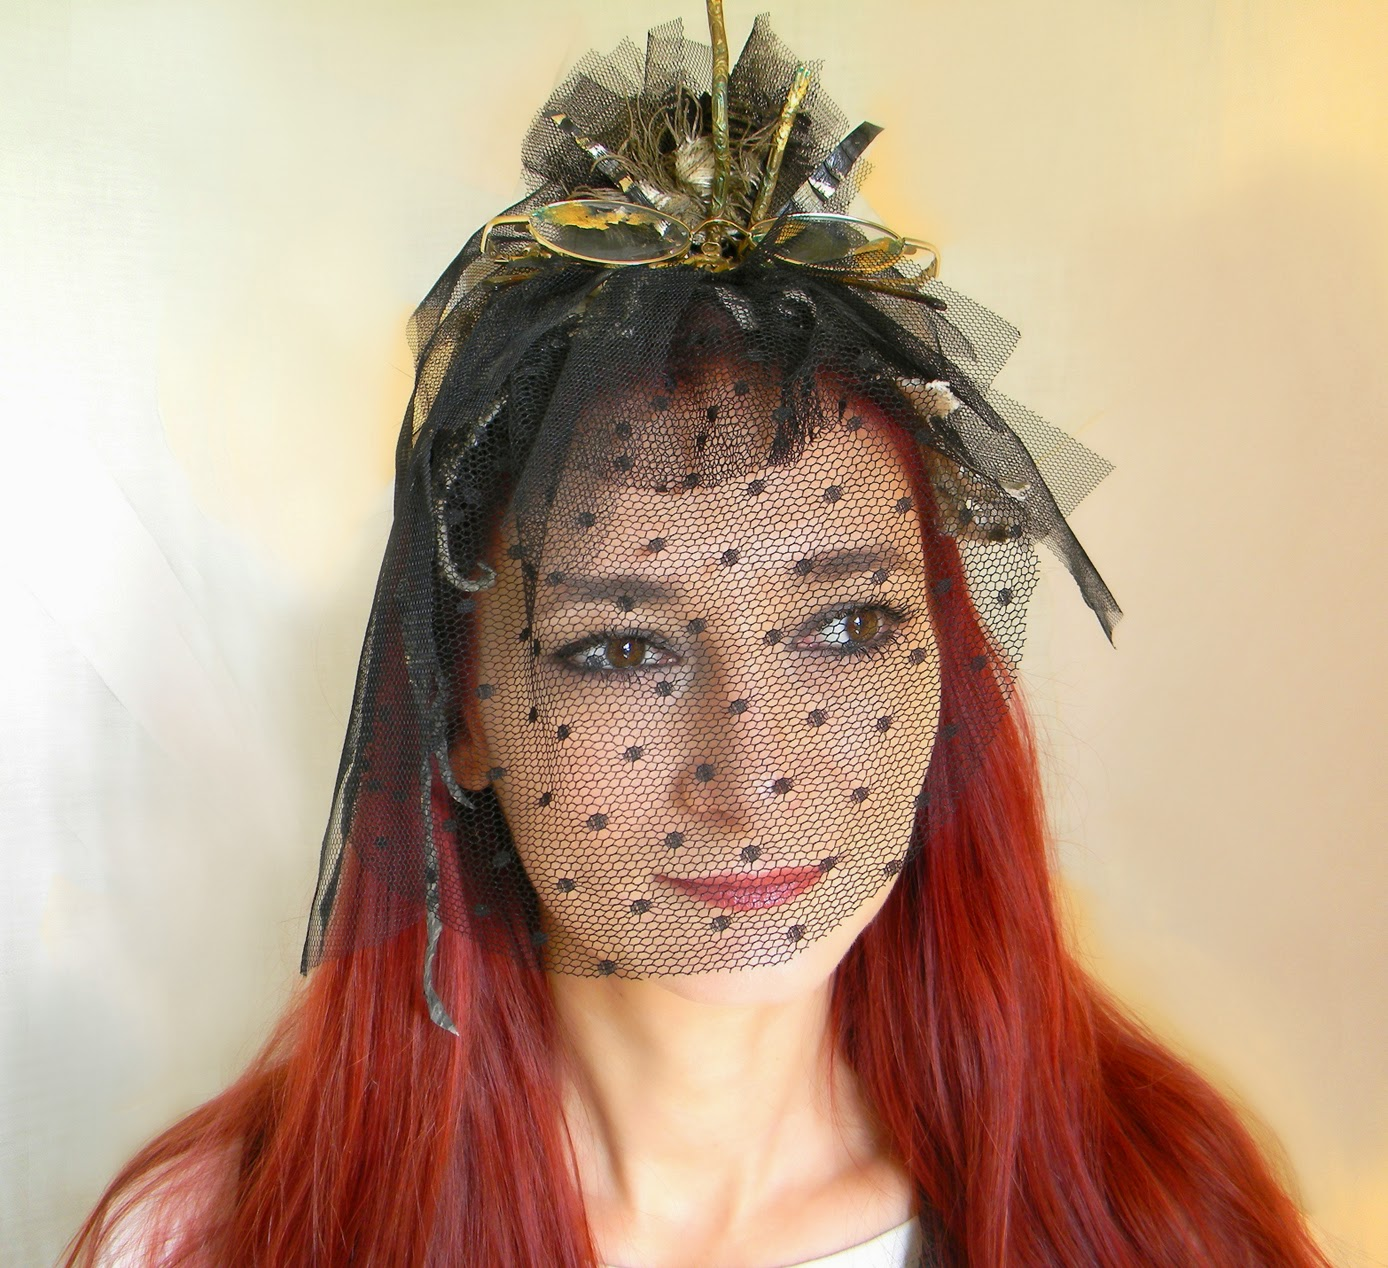 Steampunk Gothic Fascinator Headdress, Victorian Head Piece with Black Dotted Veil